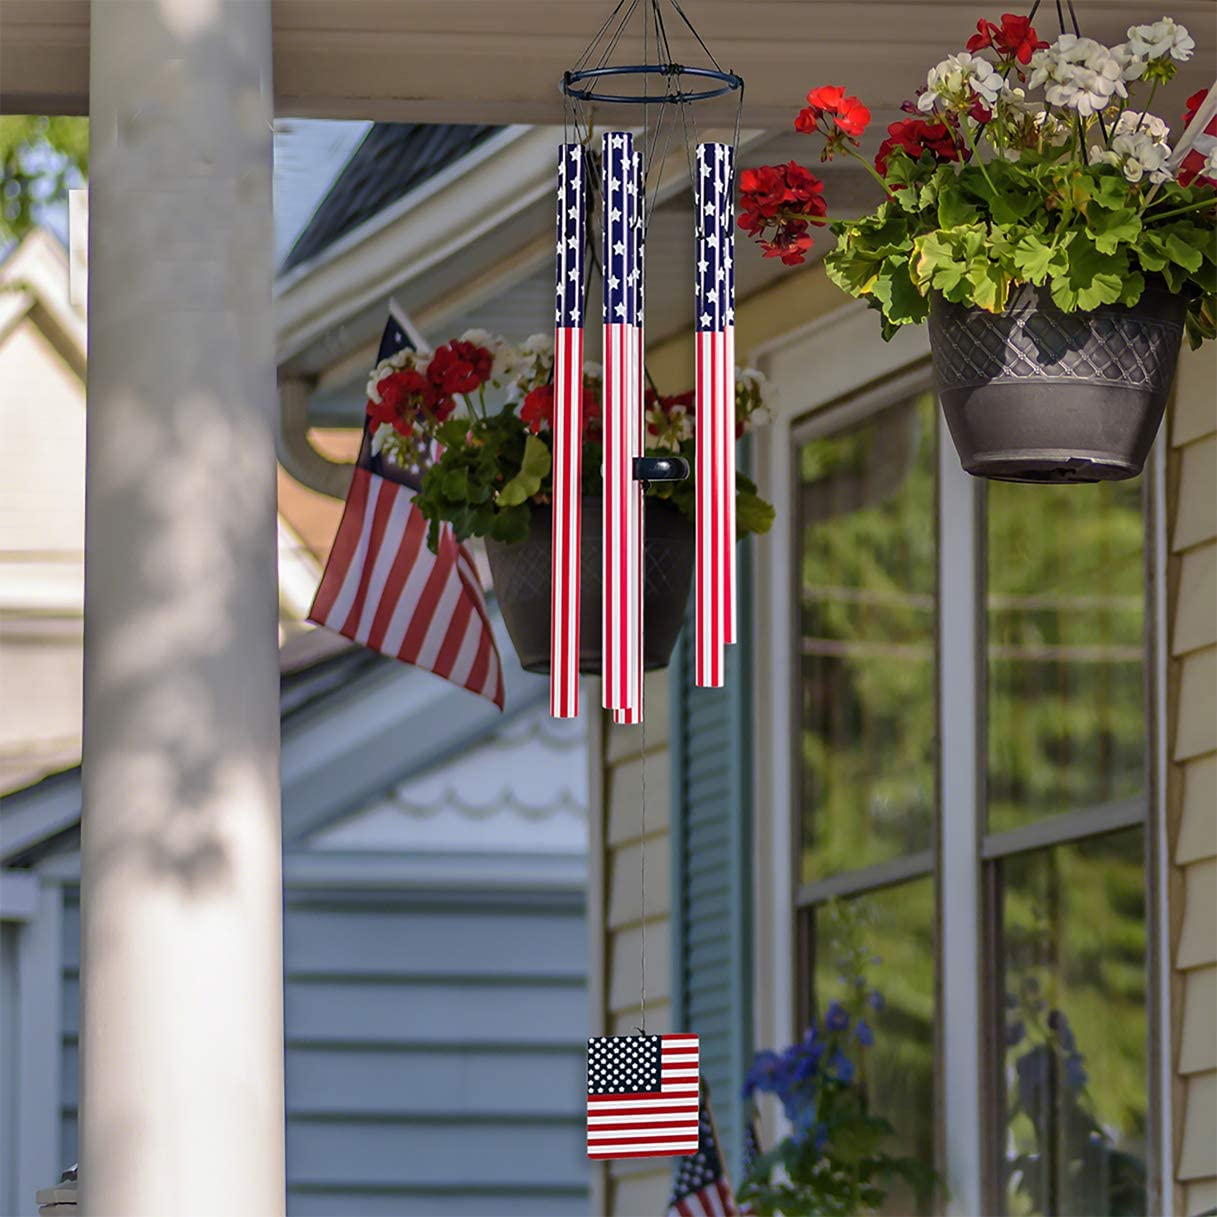 American Flag Wind Chime - Large Outdoor Patriotic Windchime with Wooden Plaque This 45 inch Sturdy Metal Unique Memorial Wind Chimes has deep Tone and is a Great Hanging Outdoor Decor Decoration